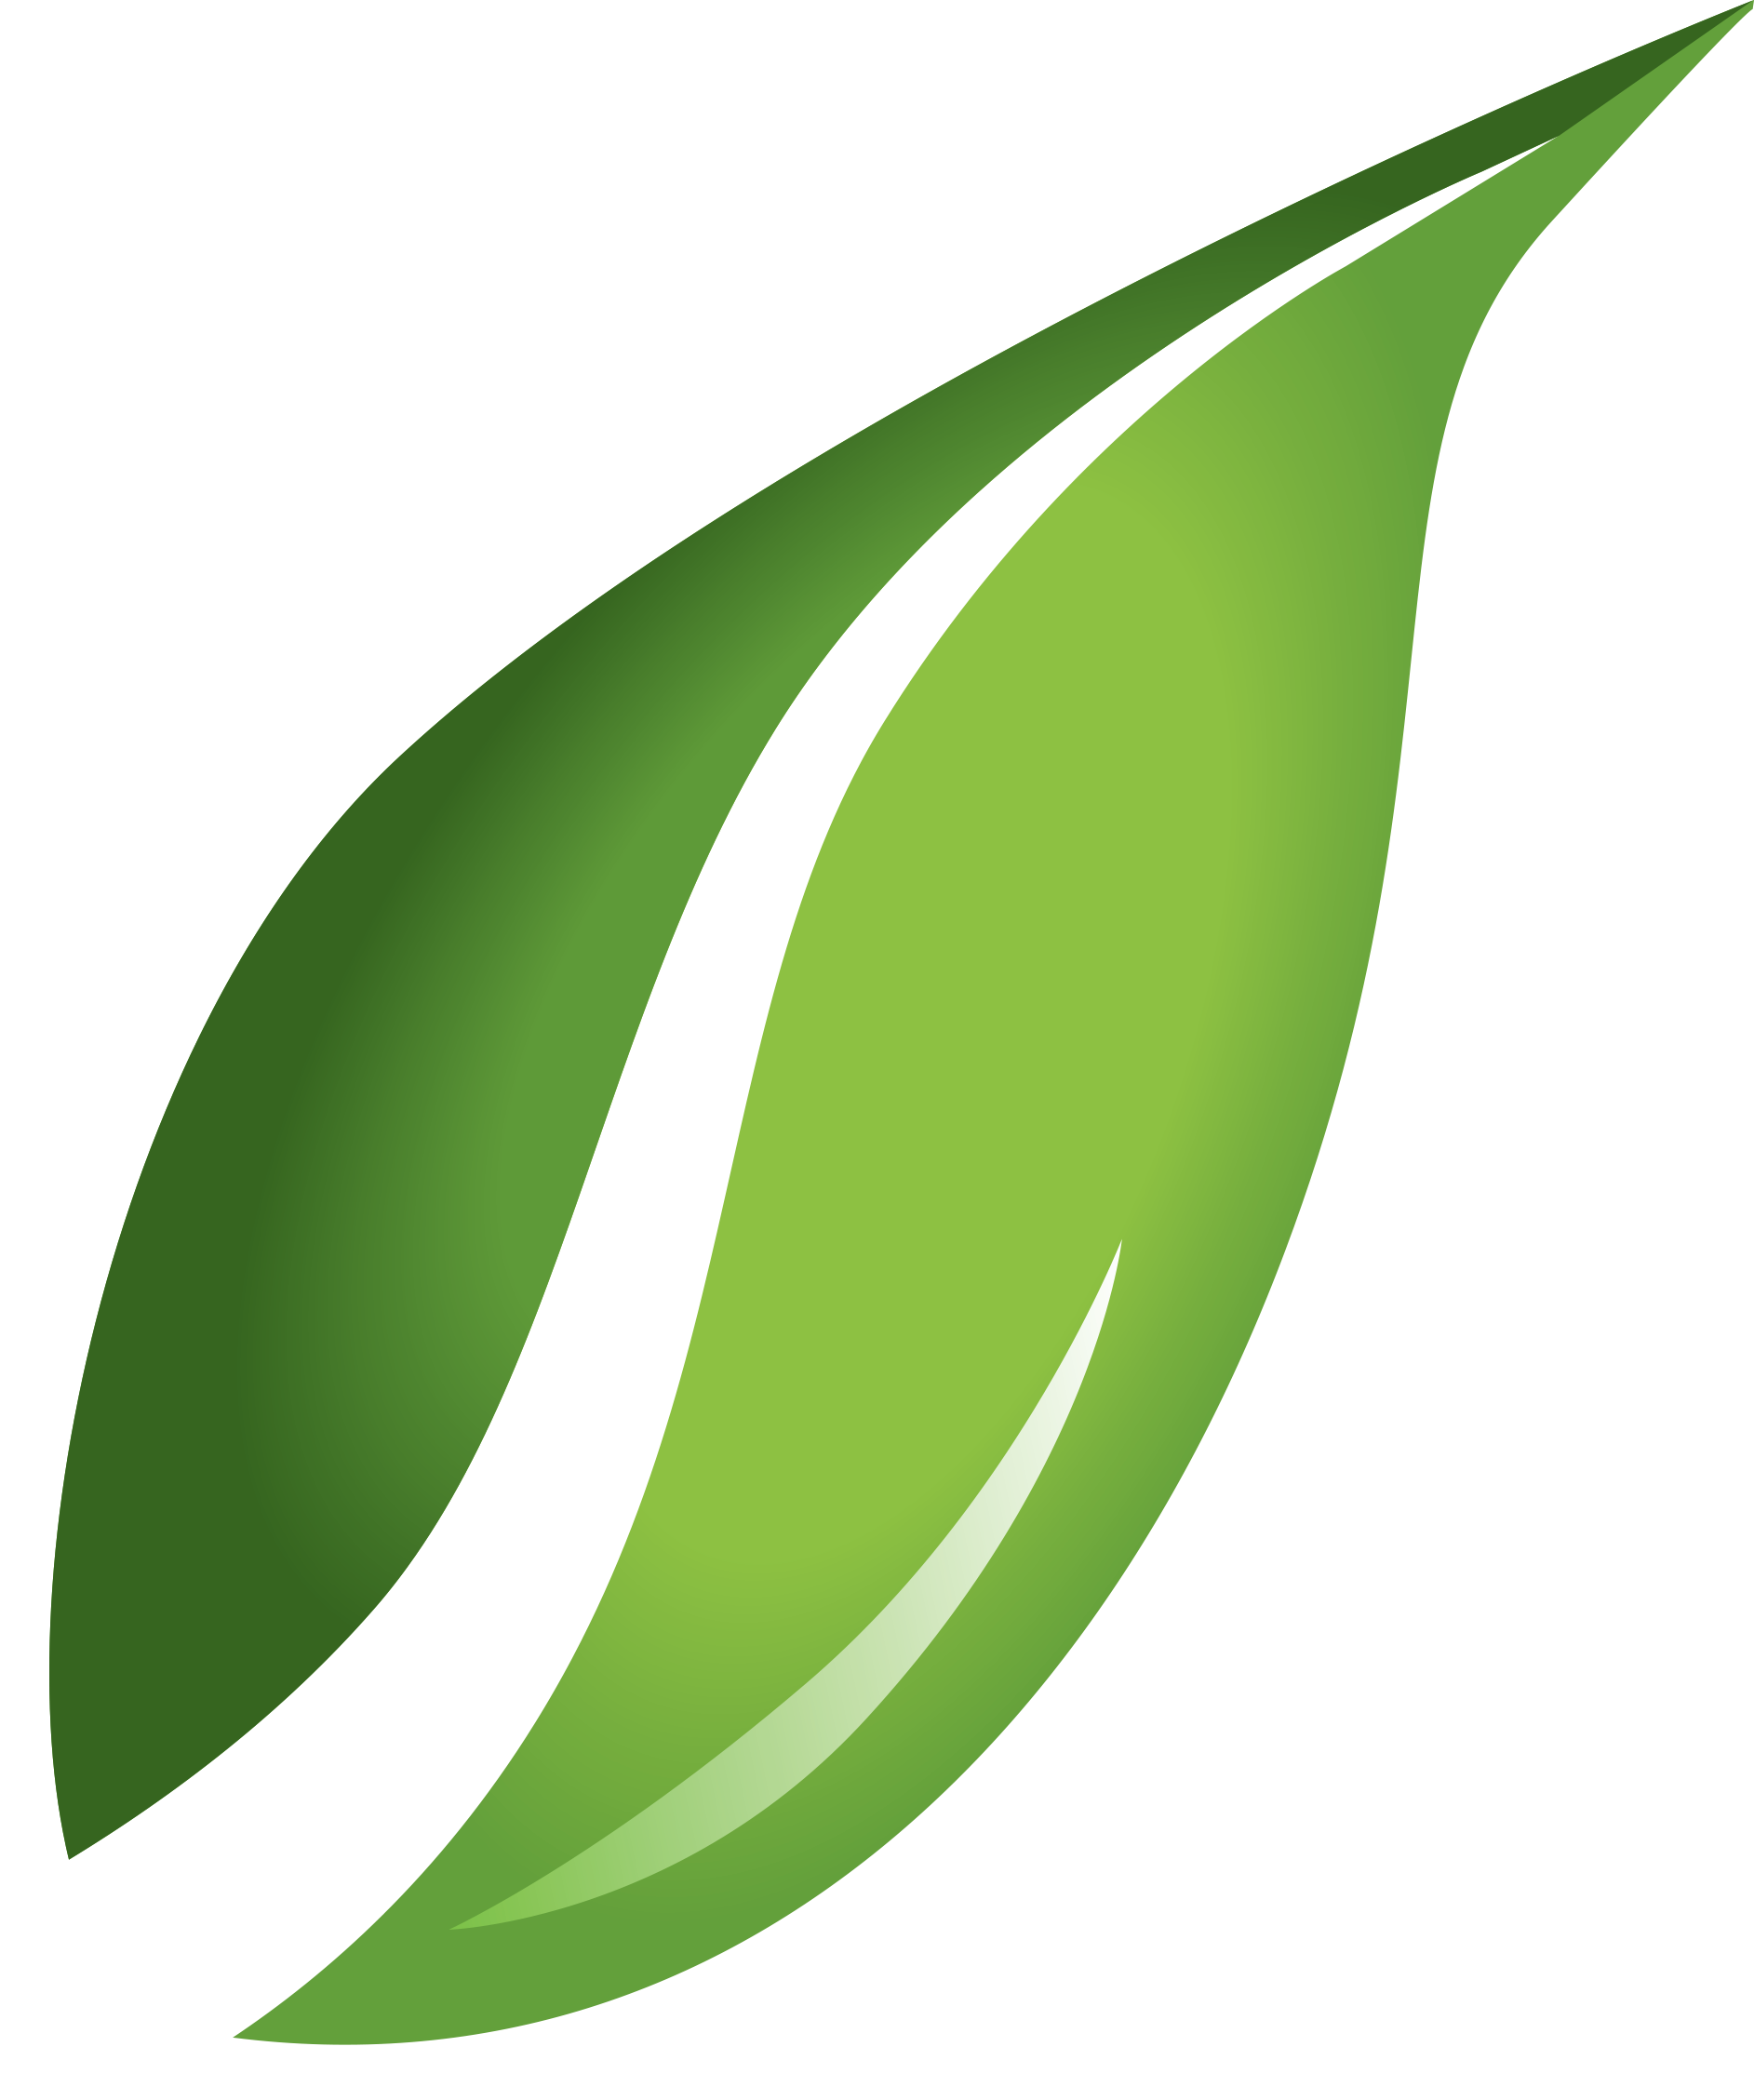 Leaf Transparent Background PNG Image